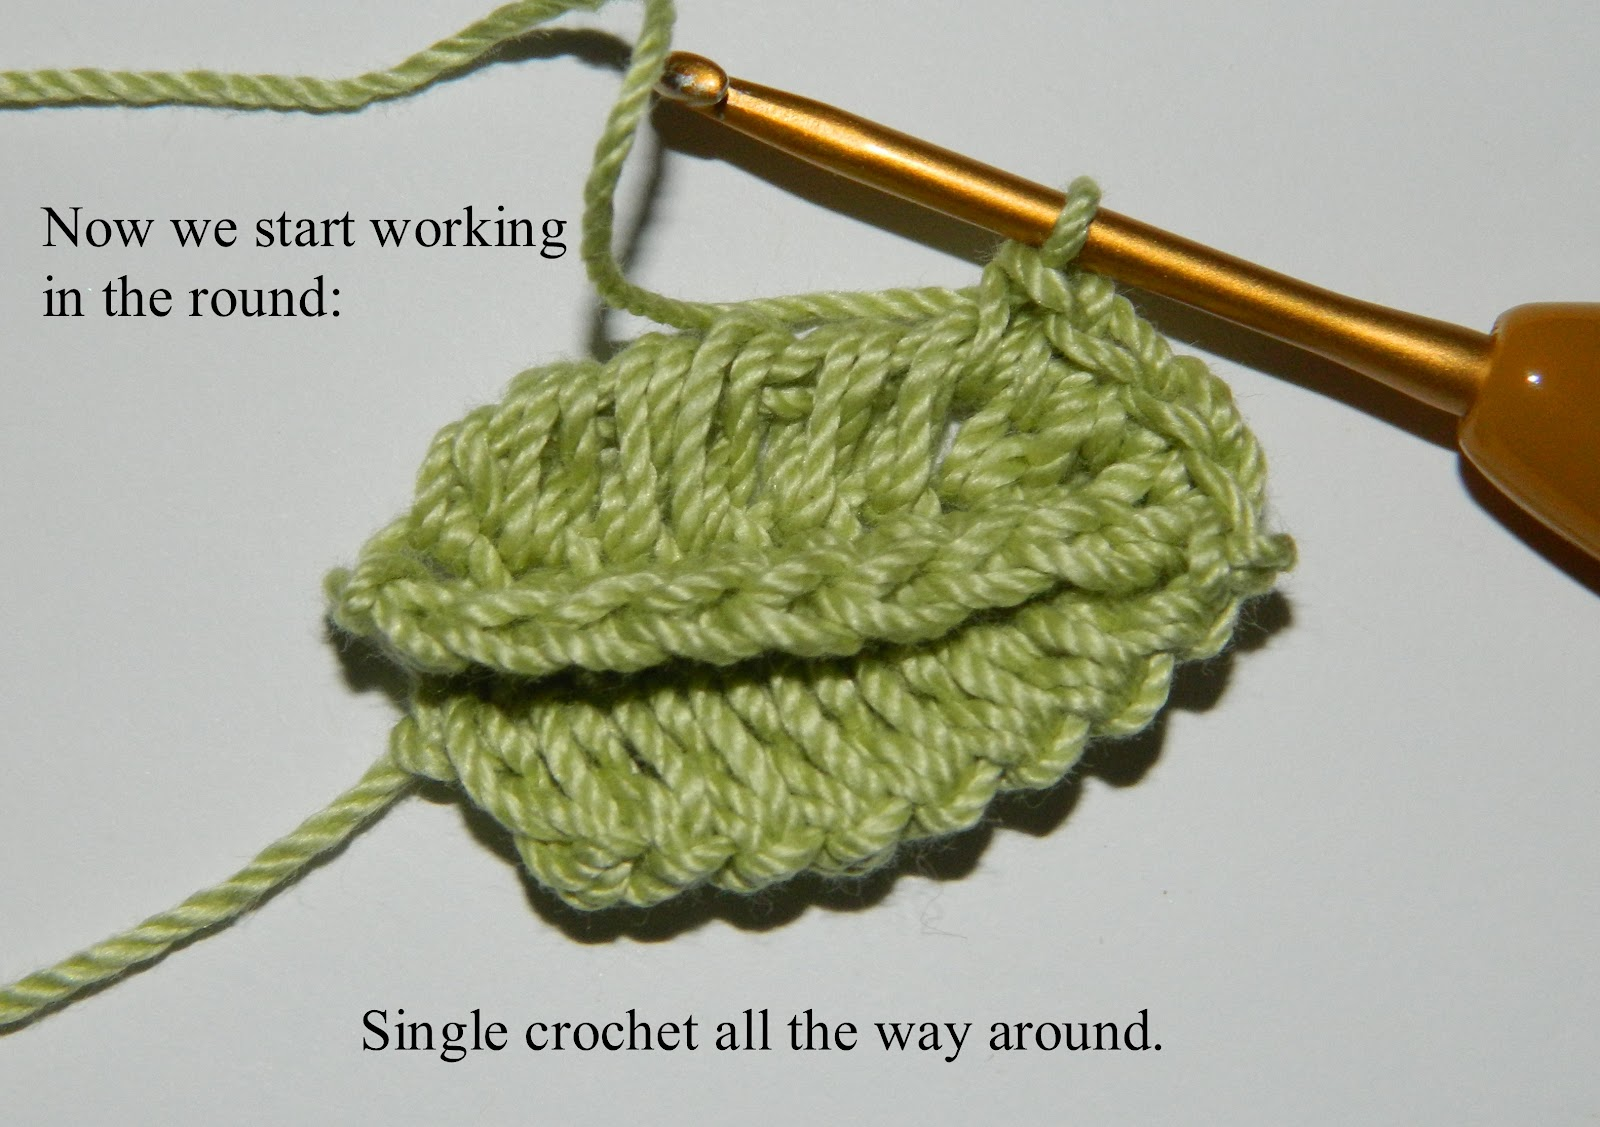 Crochet Leaf : Here is my leaf on the left and a picture of the leaf on Pinterest on ...